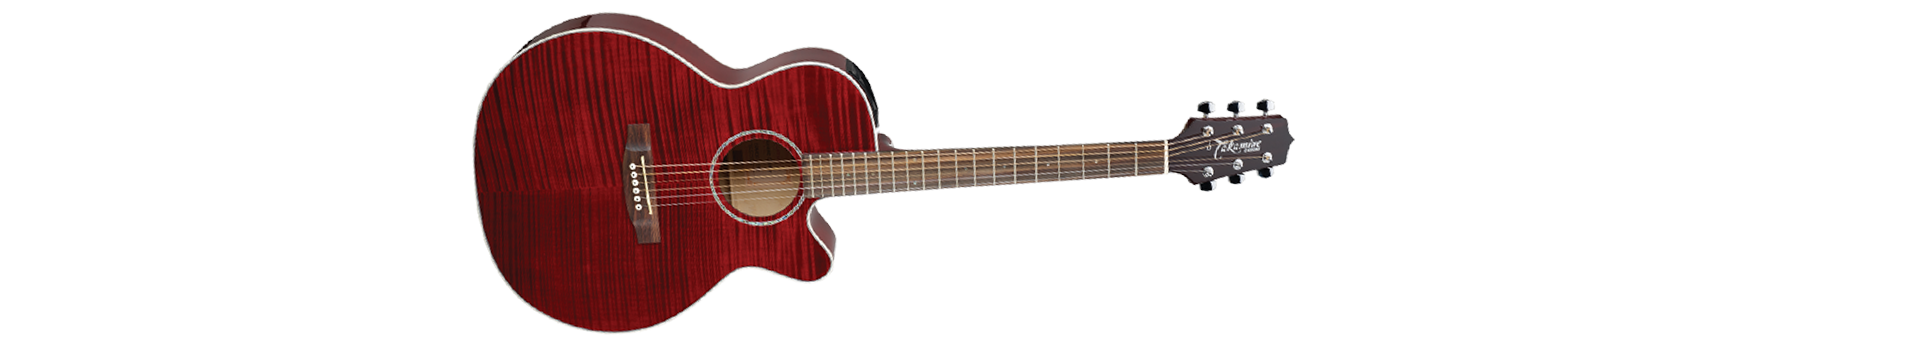 Takamine Guitars Product Details